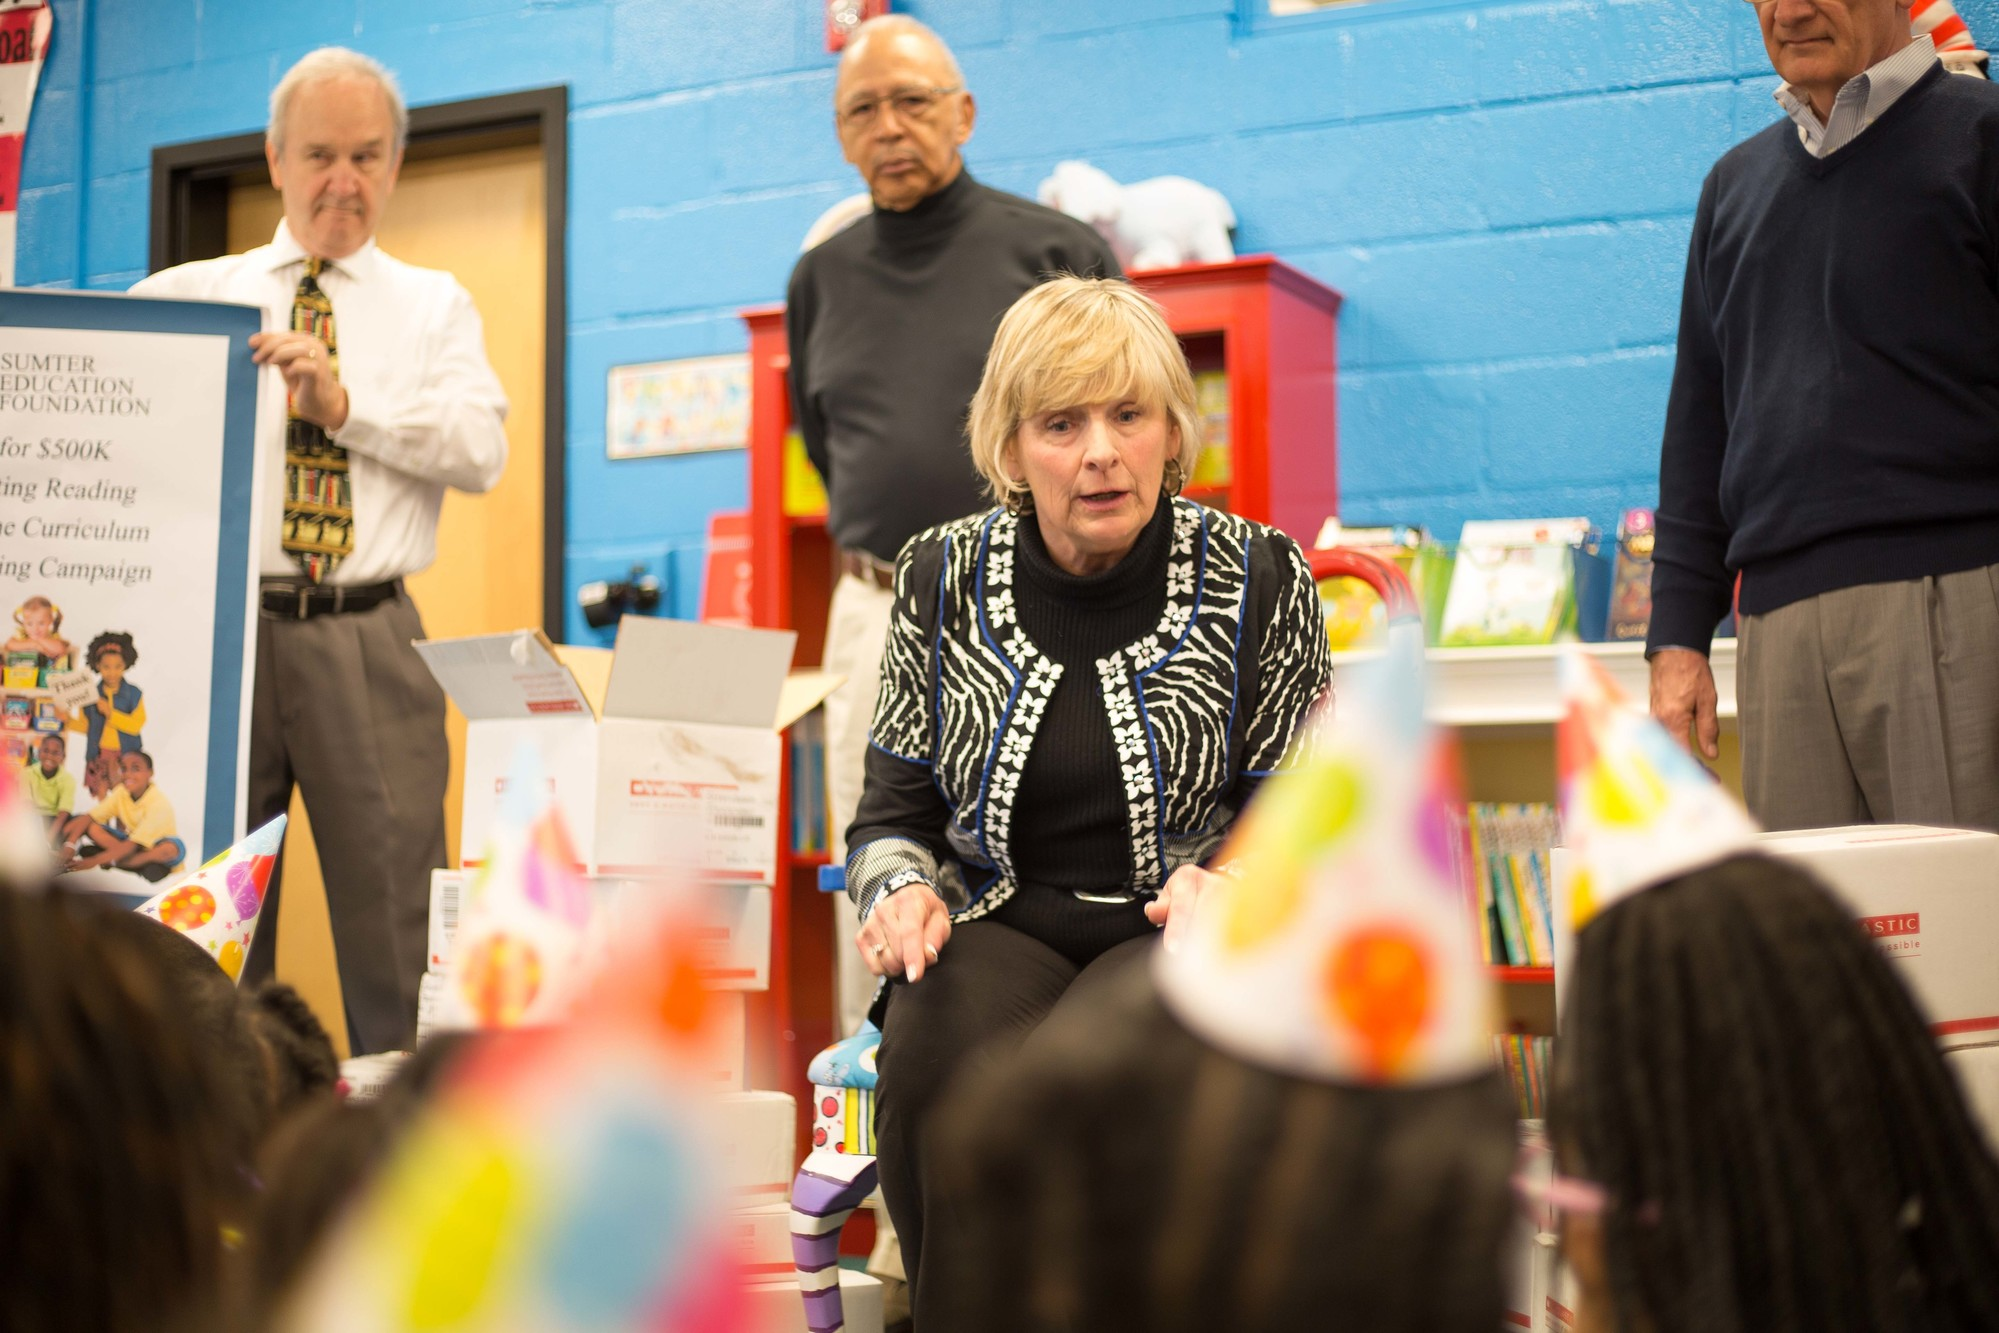 Susan Hilton, a member of the Sumter Education Foundation Board of Directors and retired Sumter High School teacher, tells second-graders at R.E. Davis Elementary School about the books the group donated to the school on Friday.